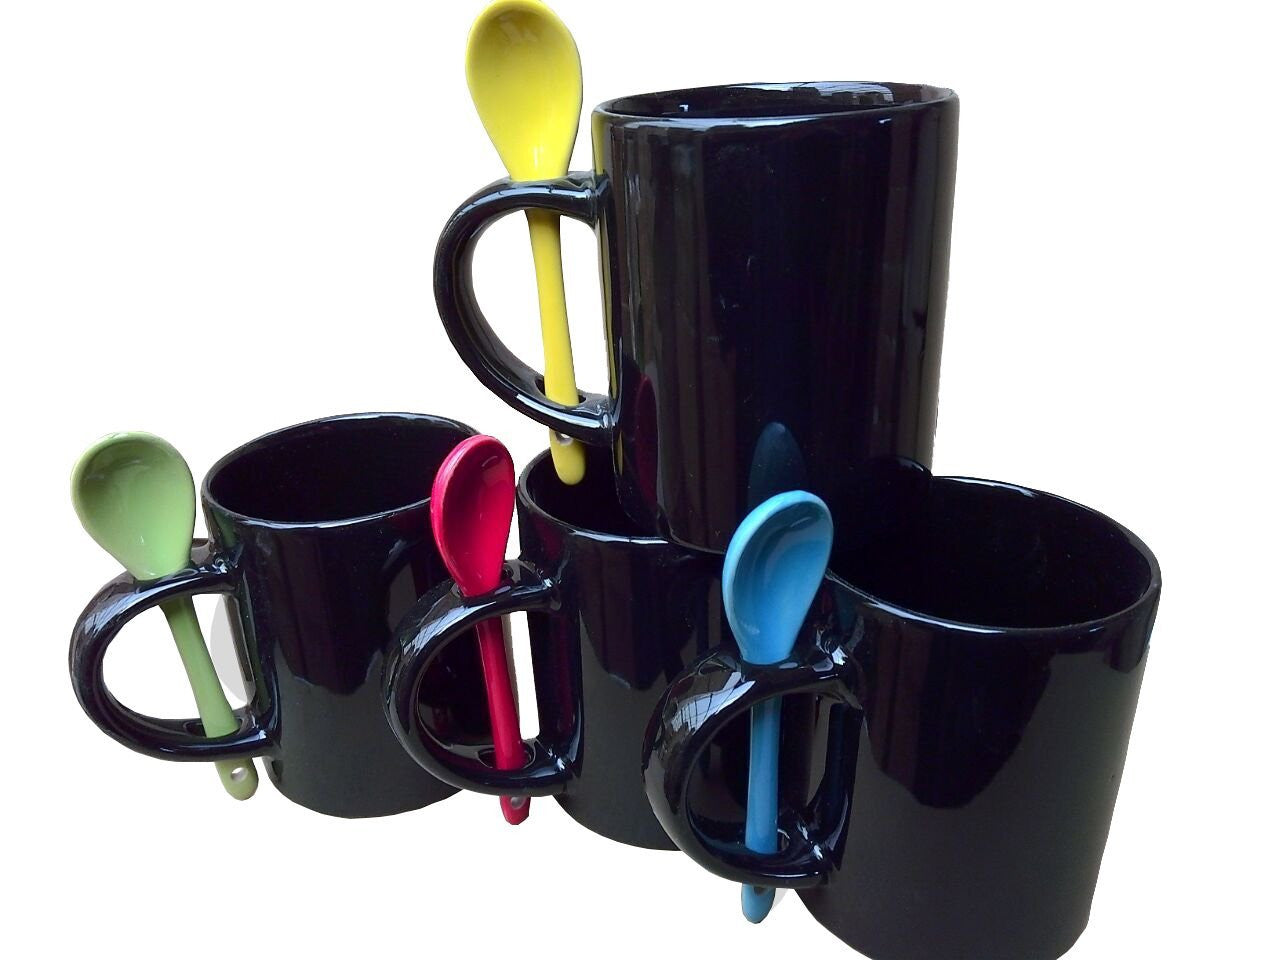 Purposefull Set of 4 Black Mugs with Spoons in the Handle